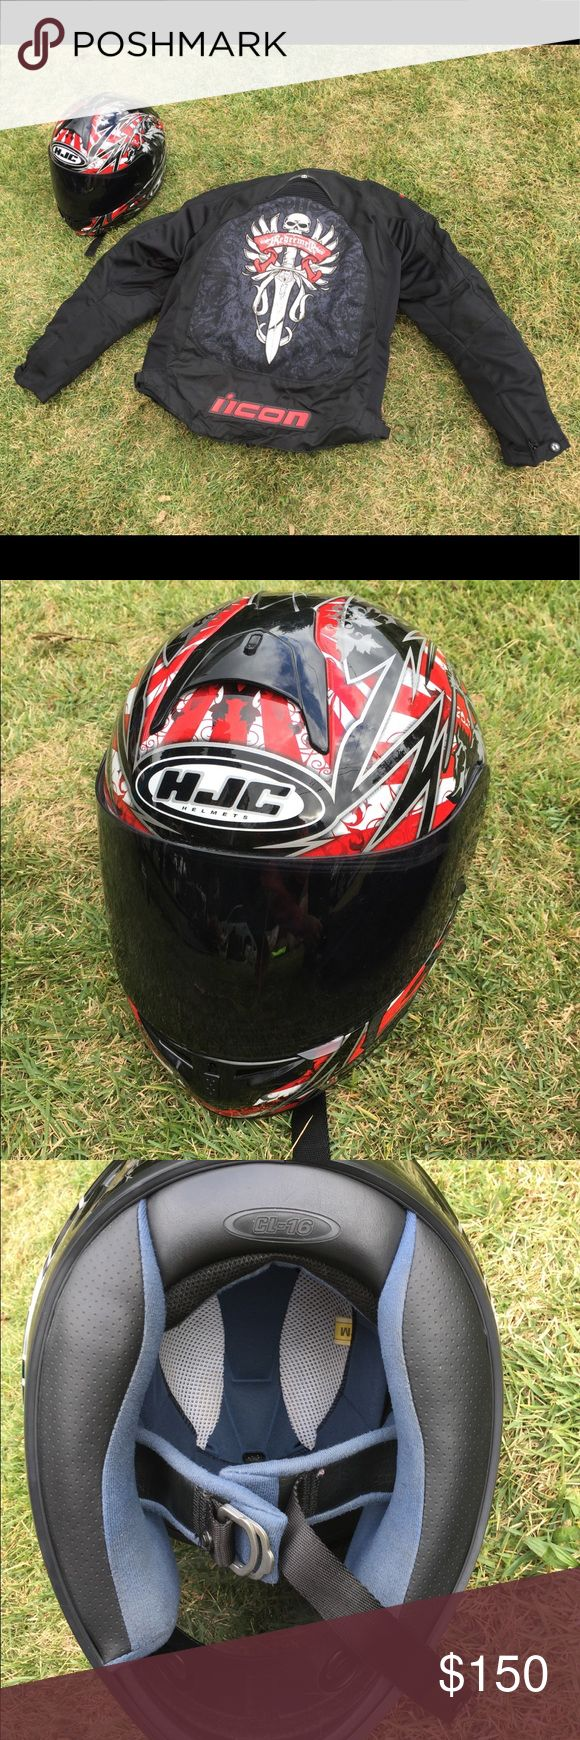 Motorcycle Jacket and Helmet HJC Helmet Size Medium with Icon Redeemer Size Medium ---- $50 for Helmet ---- $150 for Jacket ICON Other